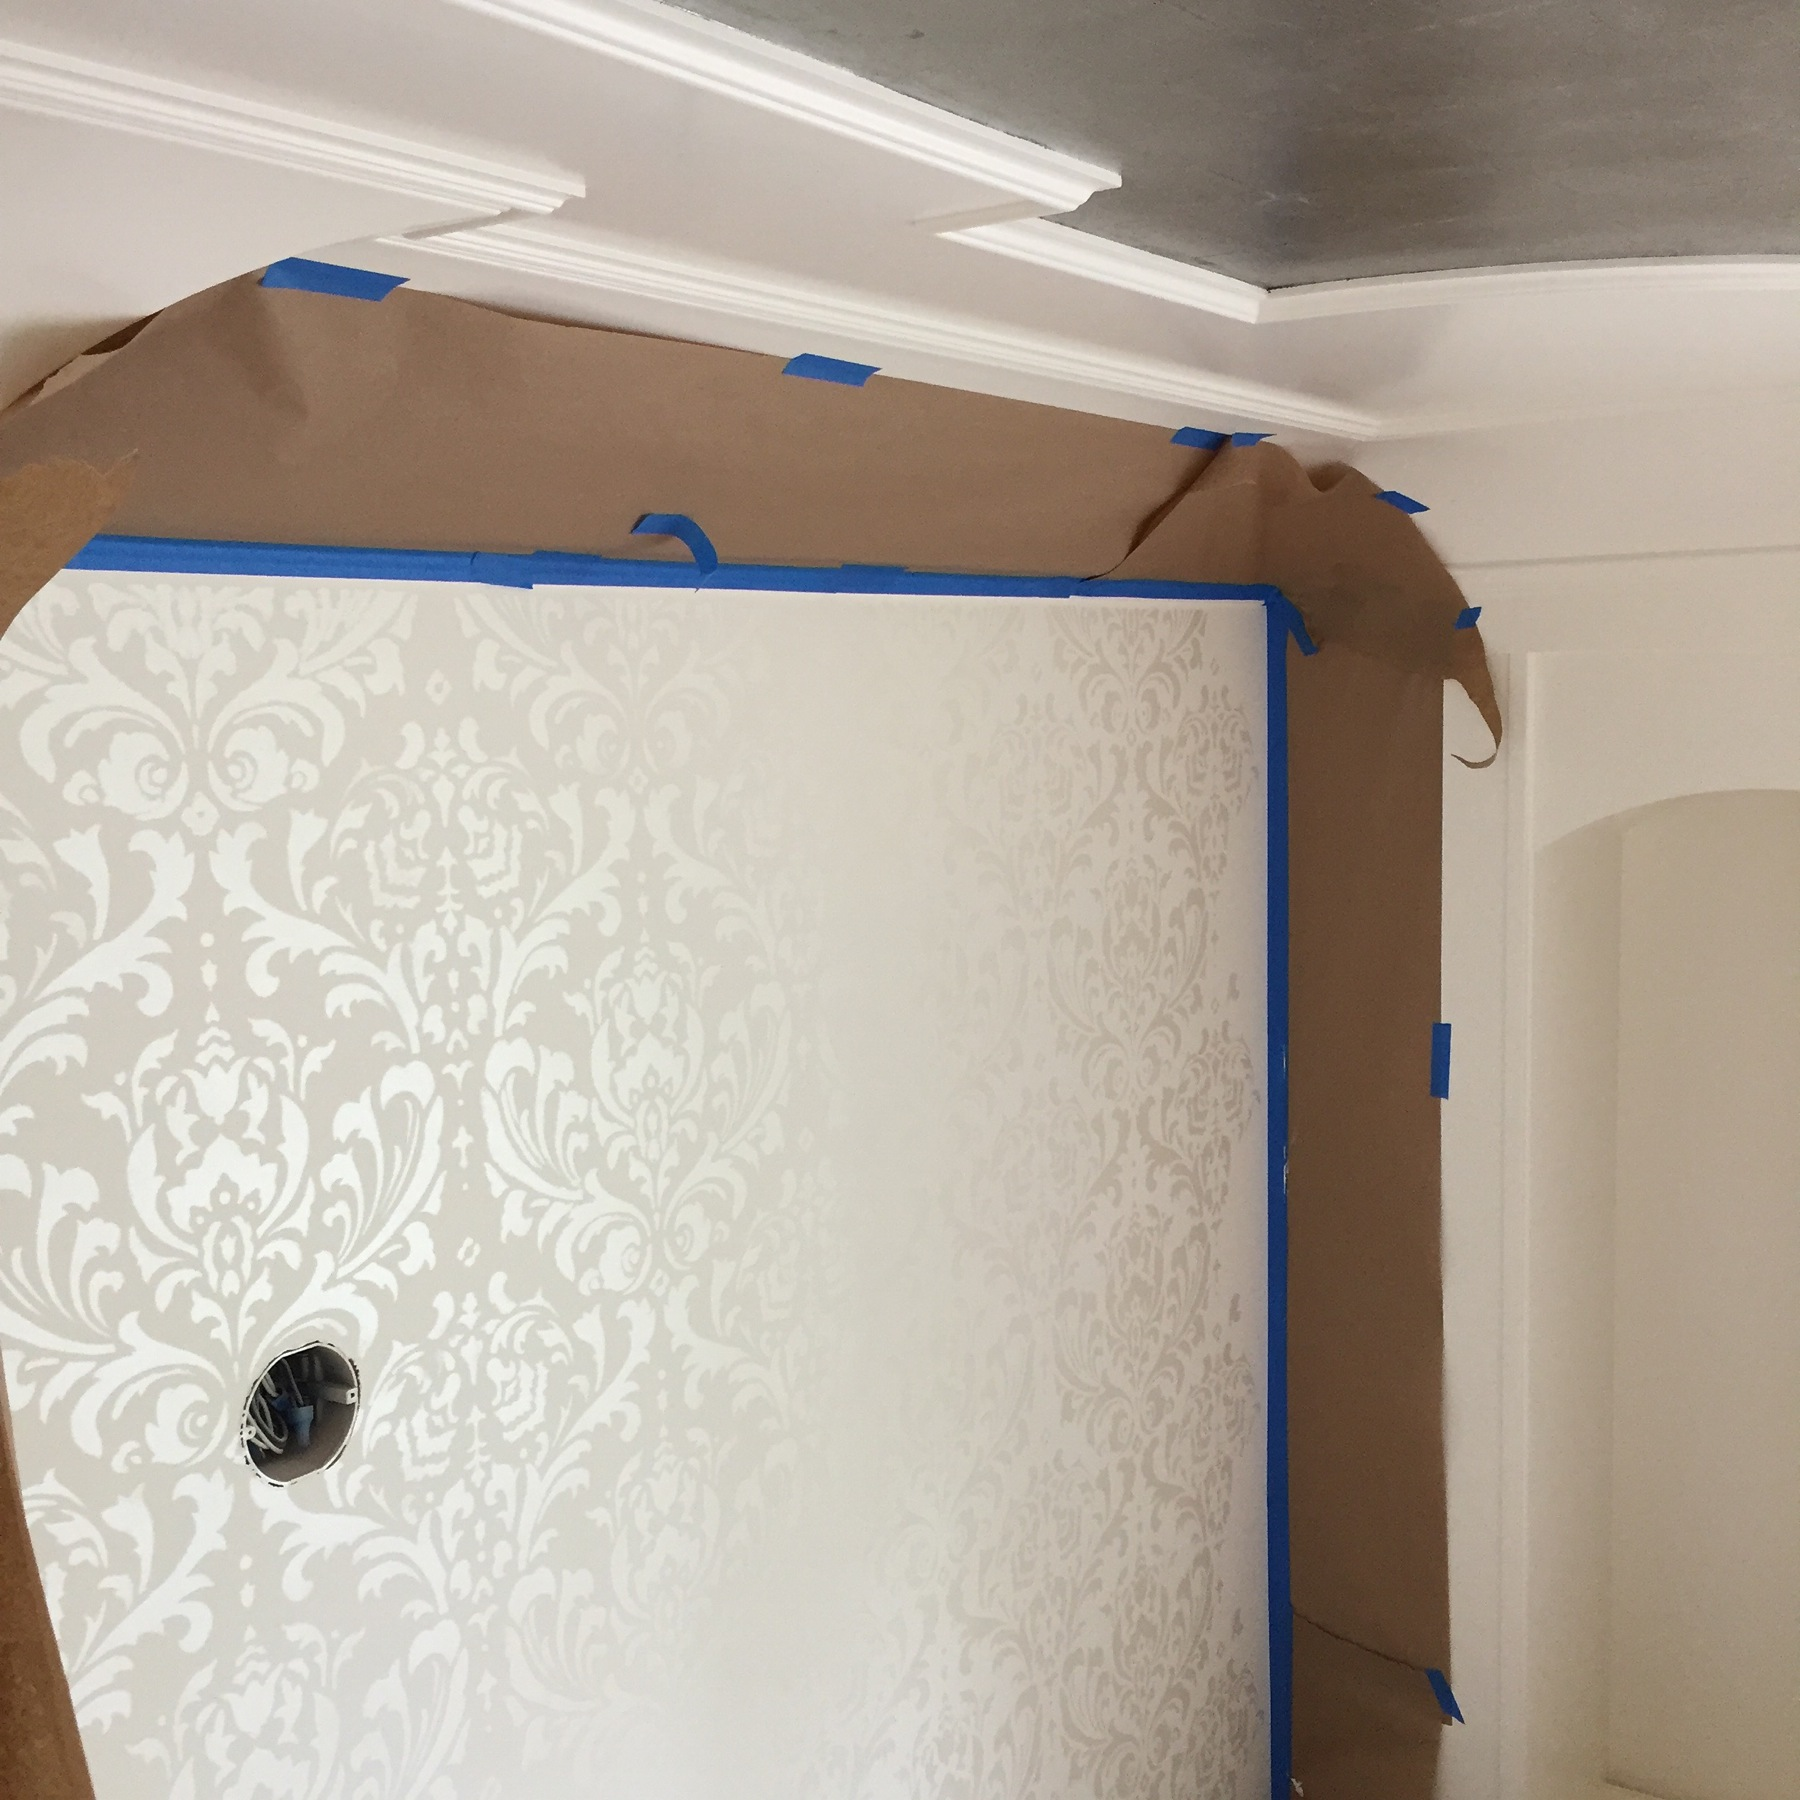 Damask Stencil hand applied section by section